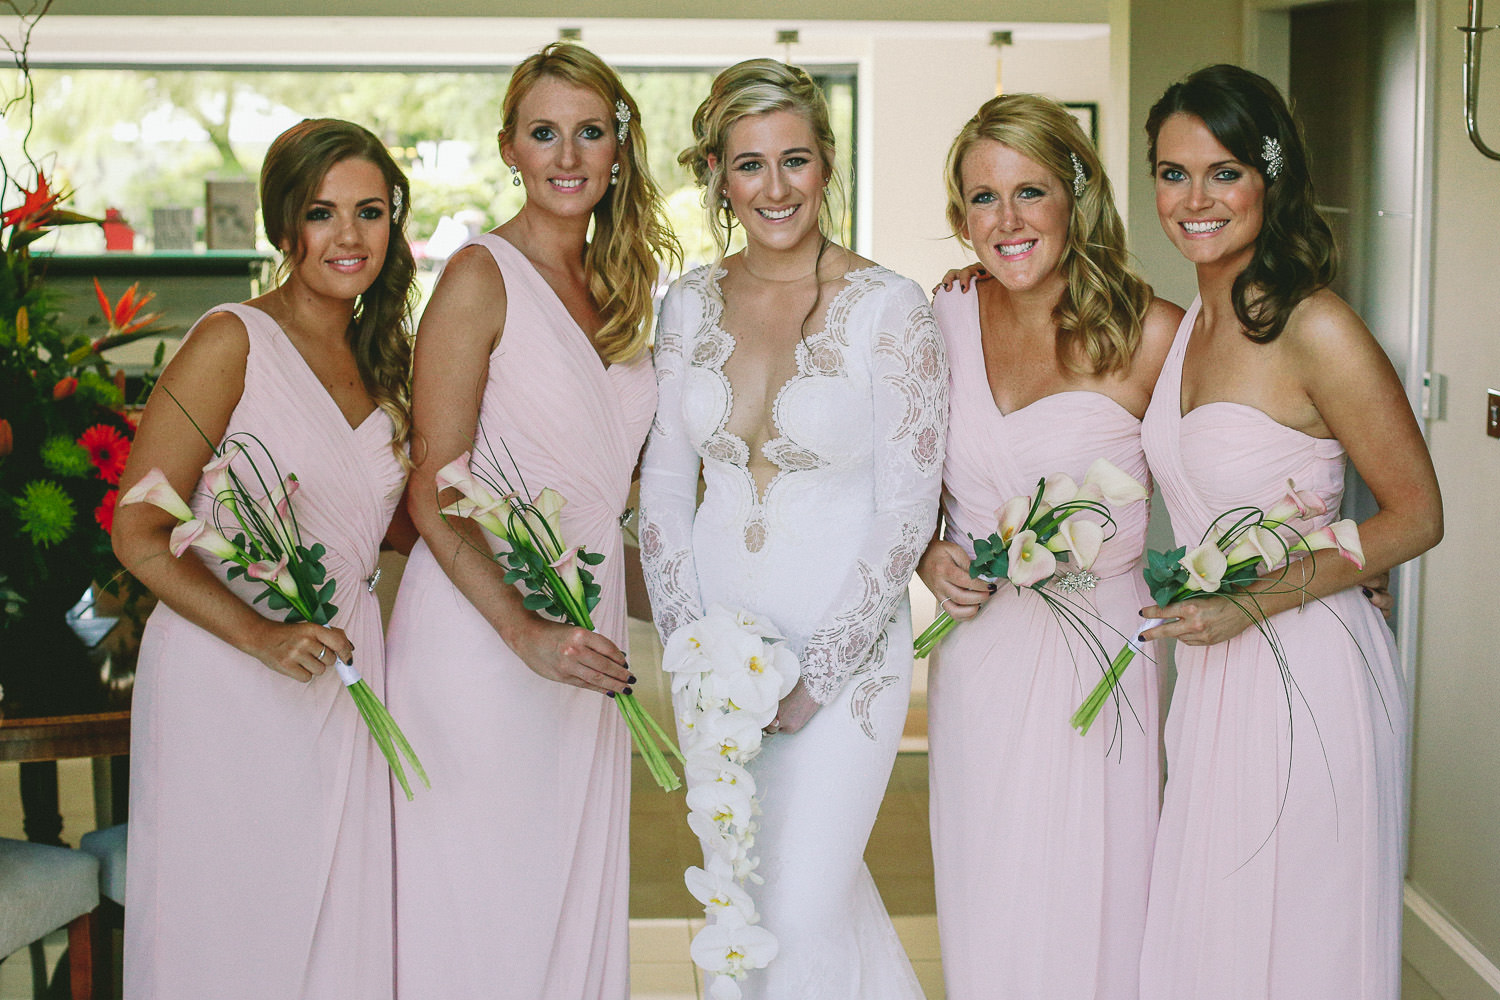 Bride and bridesmaids in Berta wedding dress Lancashire wedding area green